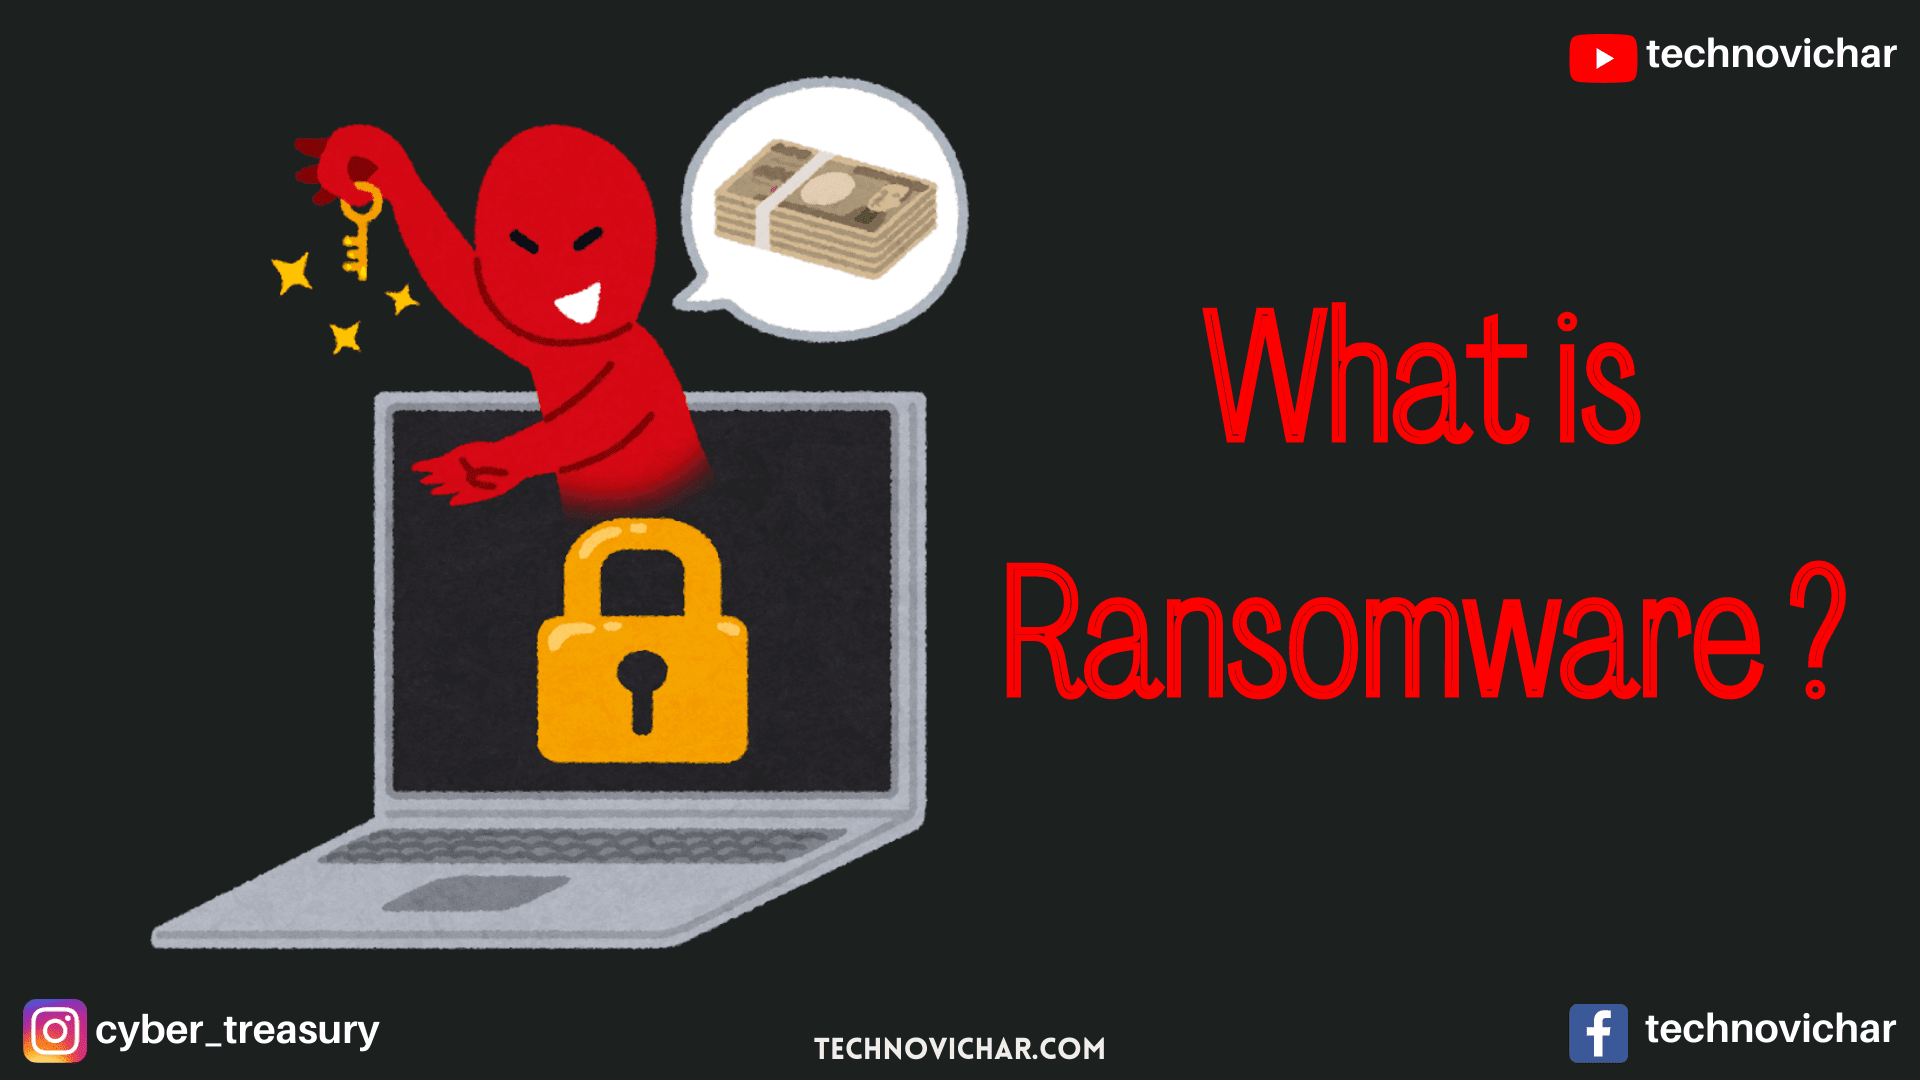 What is Ransomware in Hindi